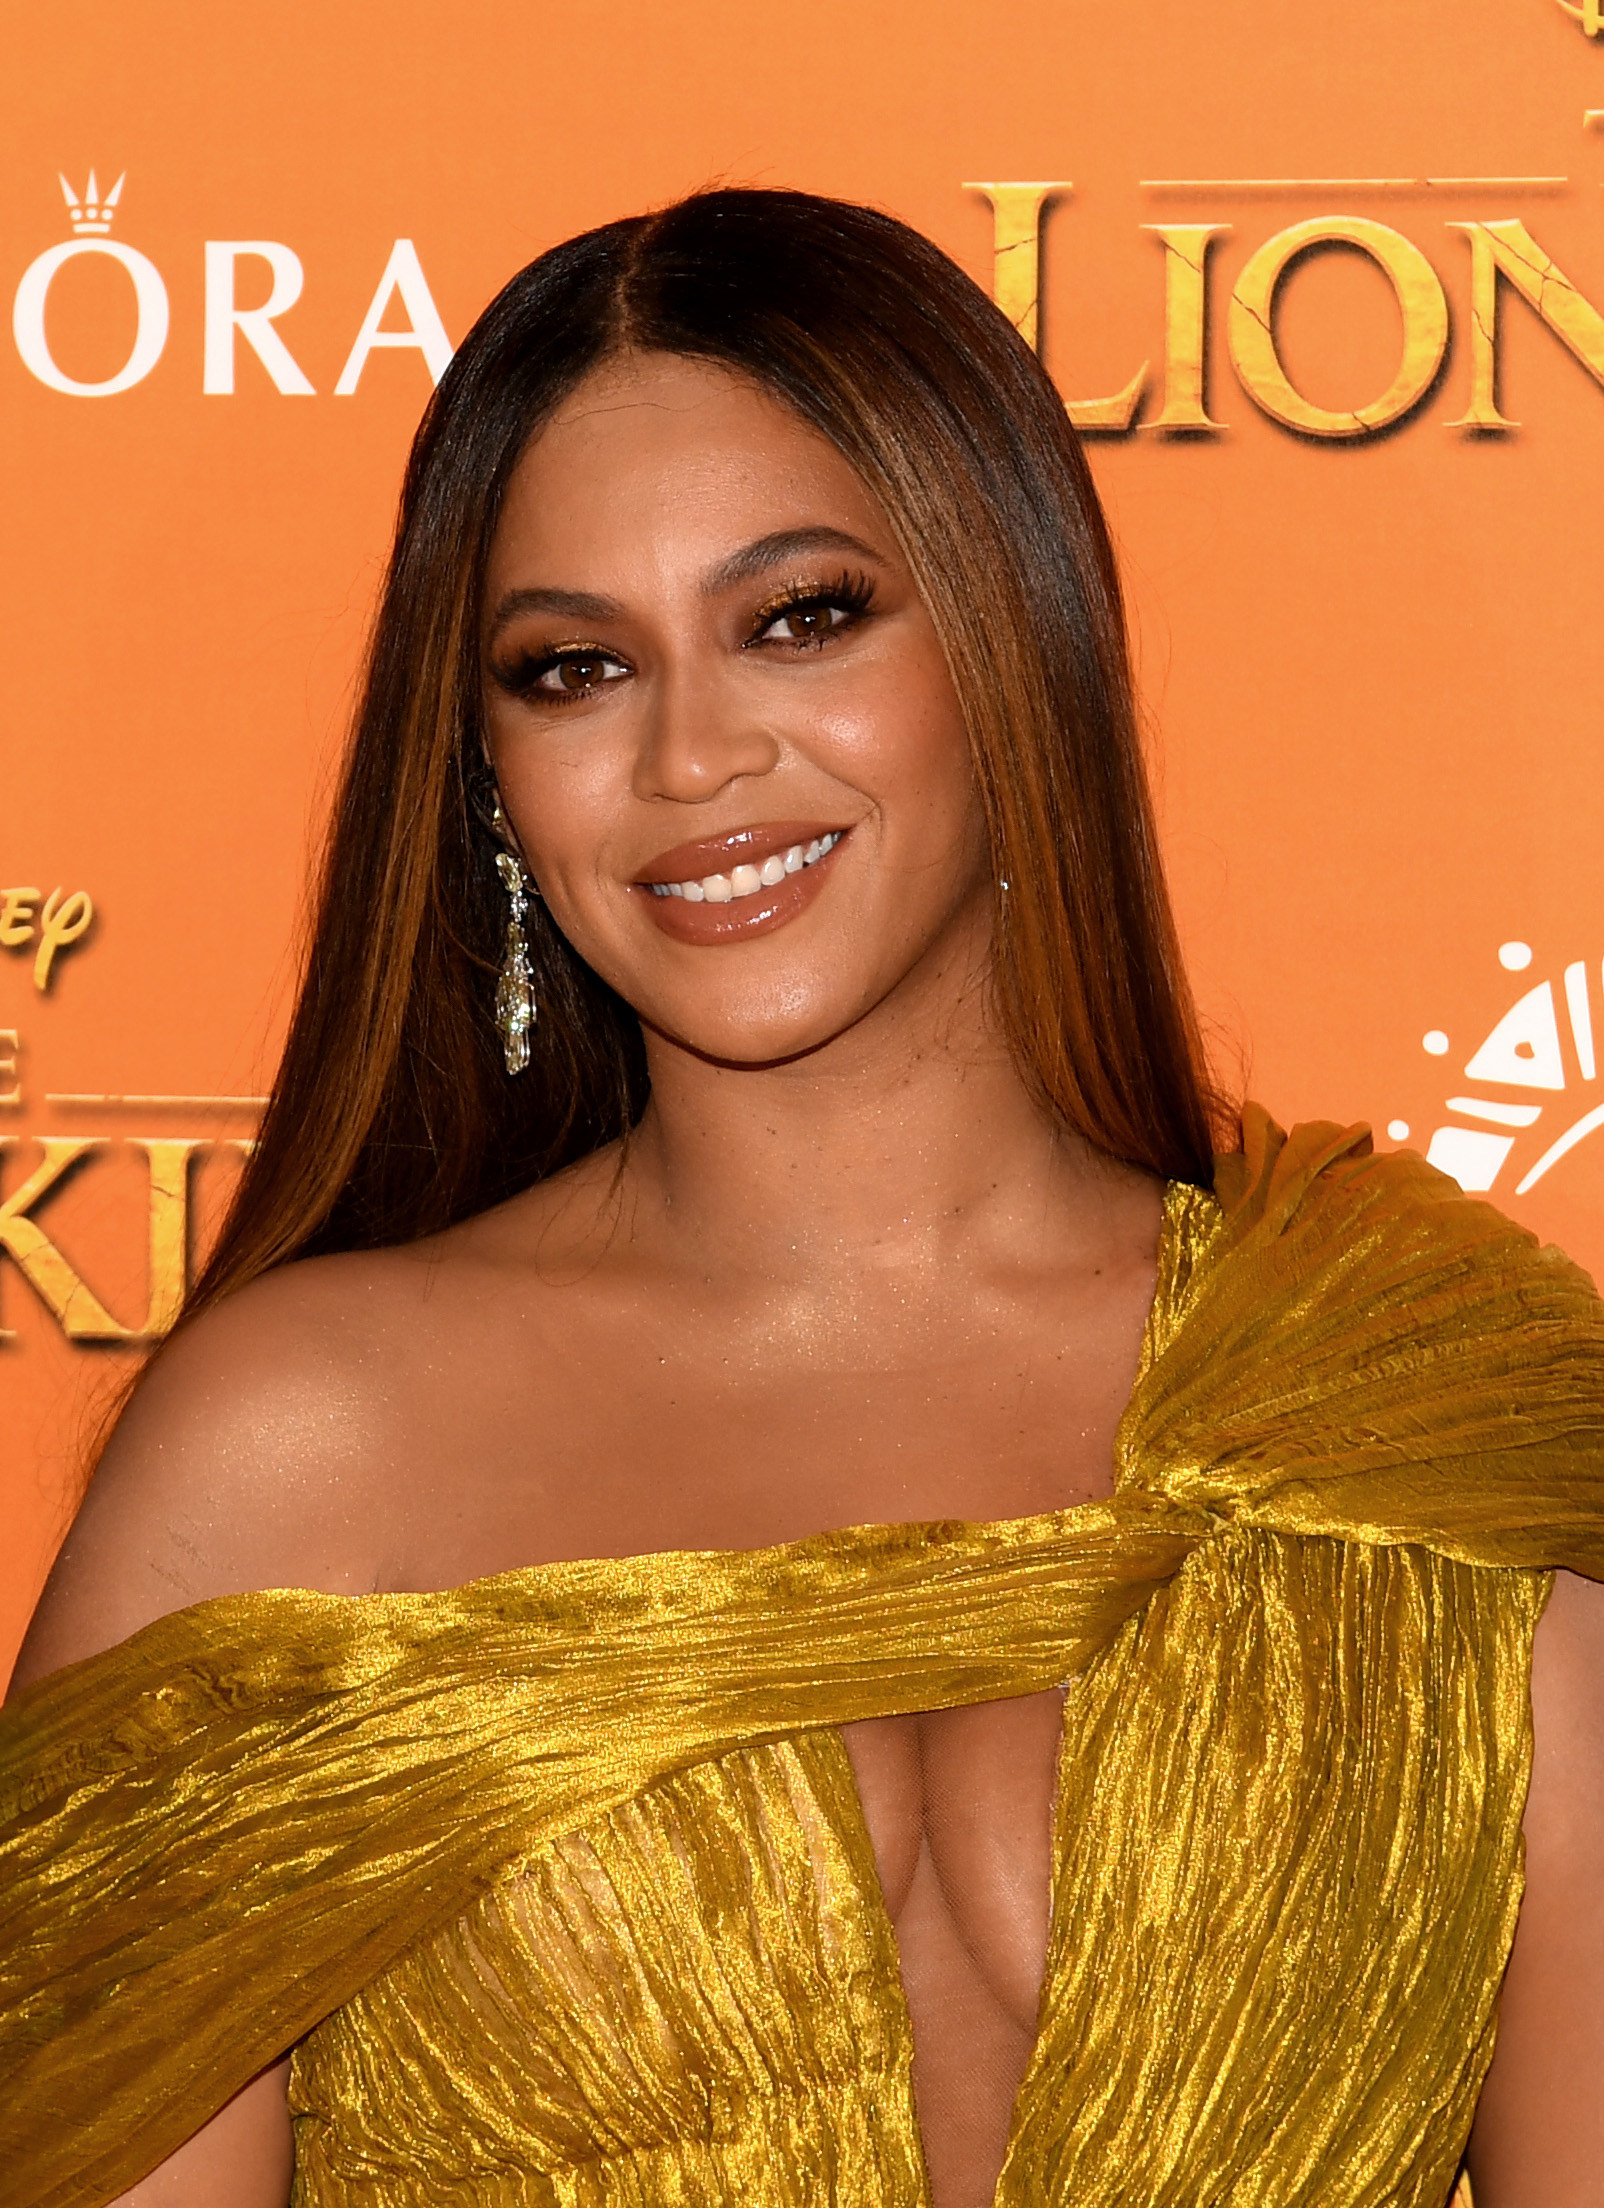 Beyoncé at the London premiere of 'The Lion King' in 2019